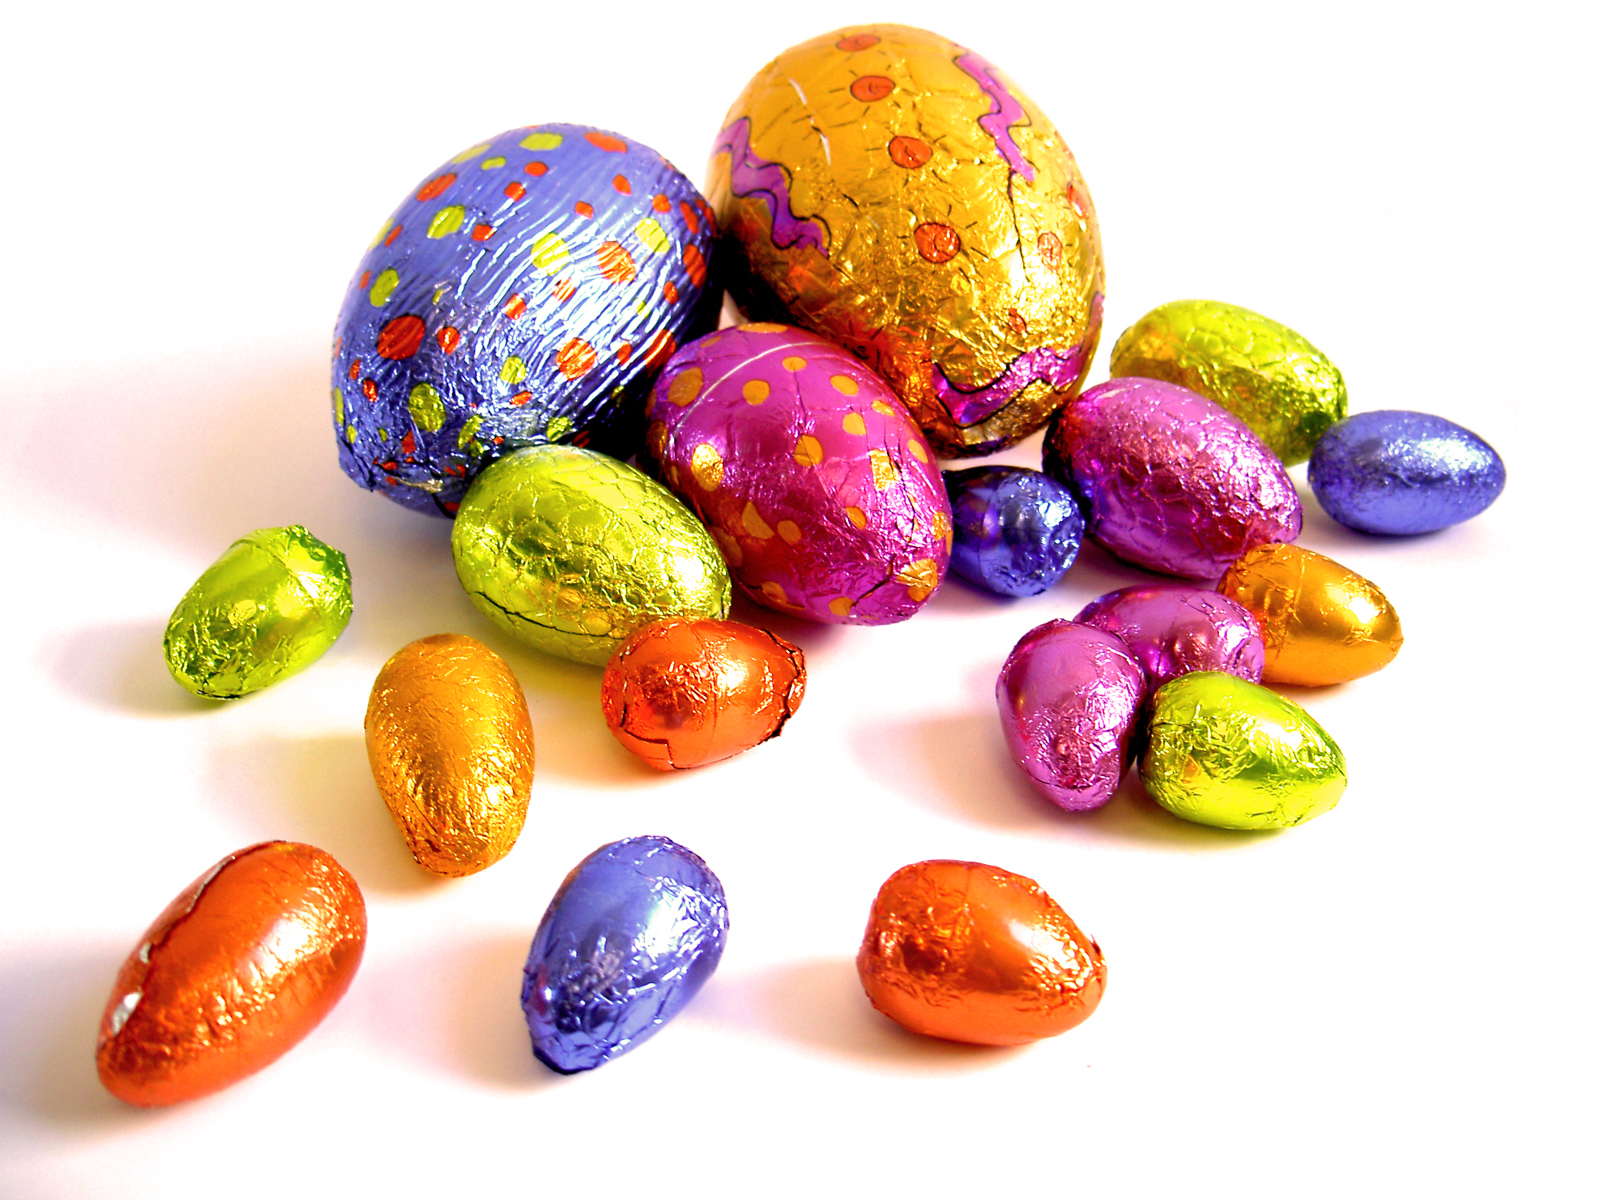 File:Easter-Eggs-1.jpg - Wikipedia